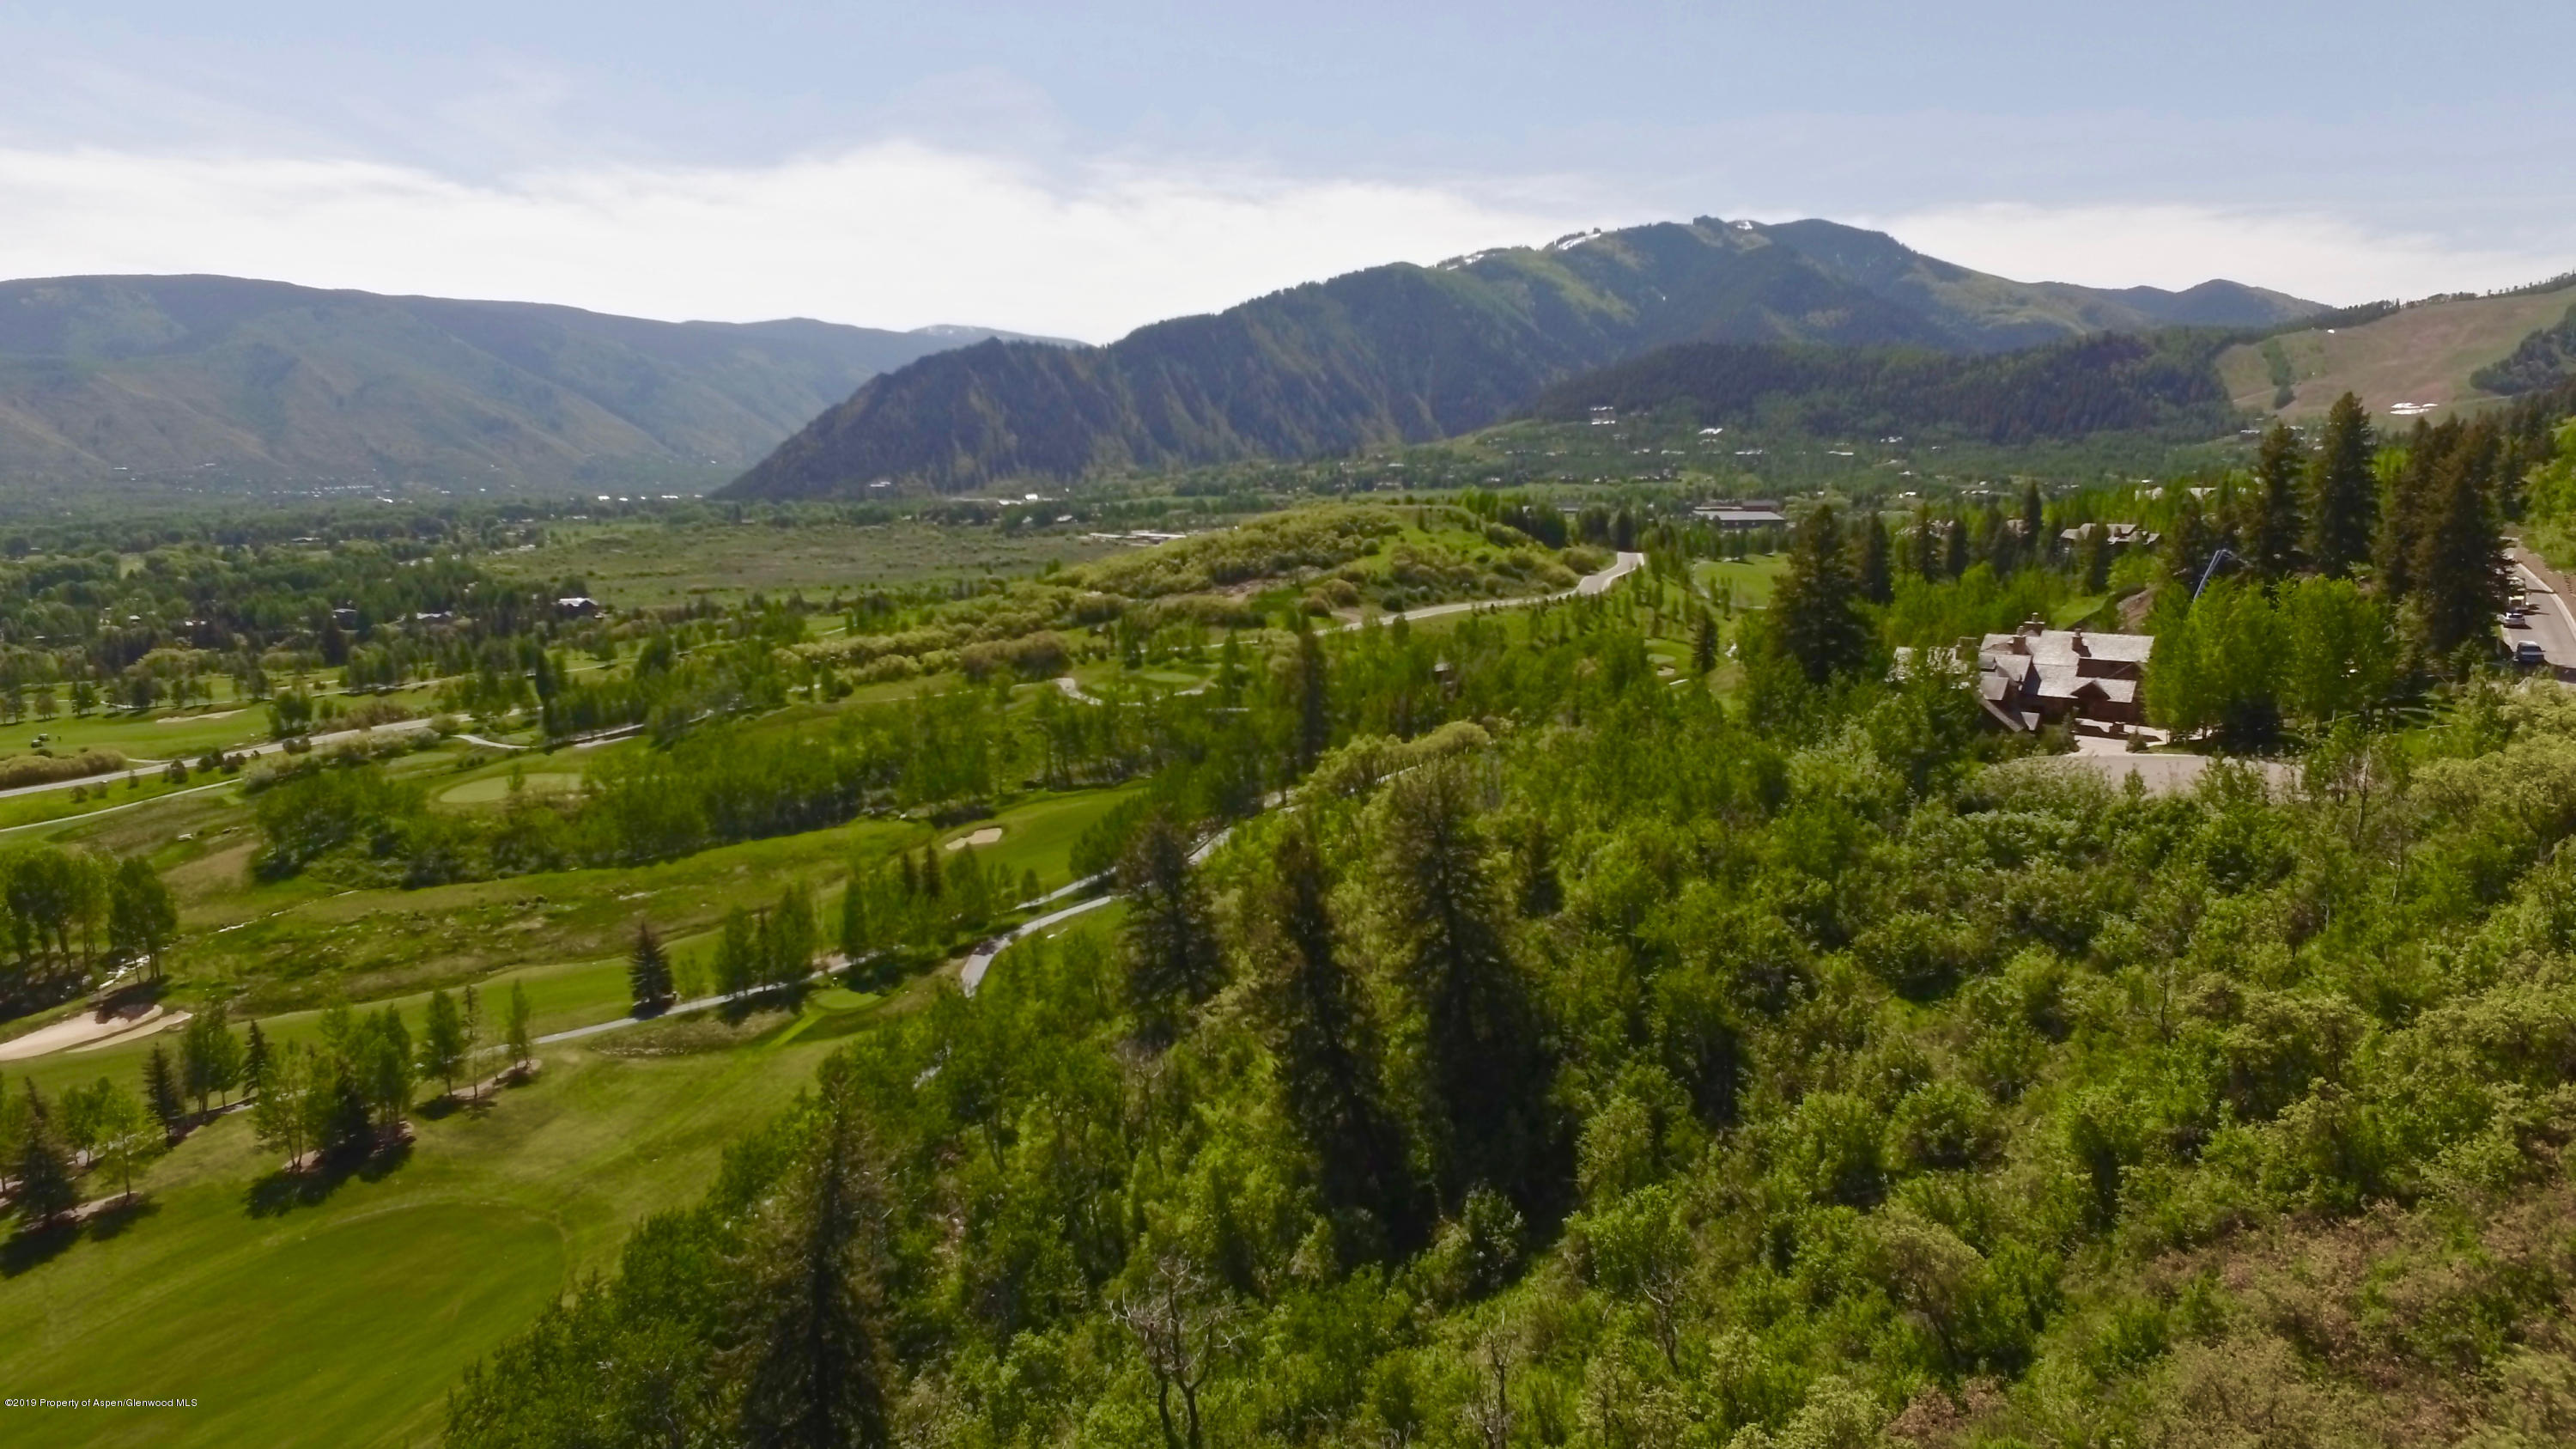 699 Pfister, Aspen, CO 81611 (MLS# 158887) - Sopris